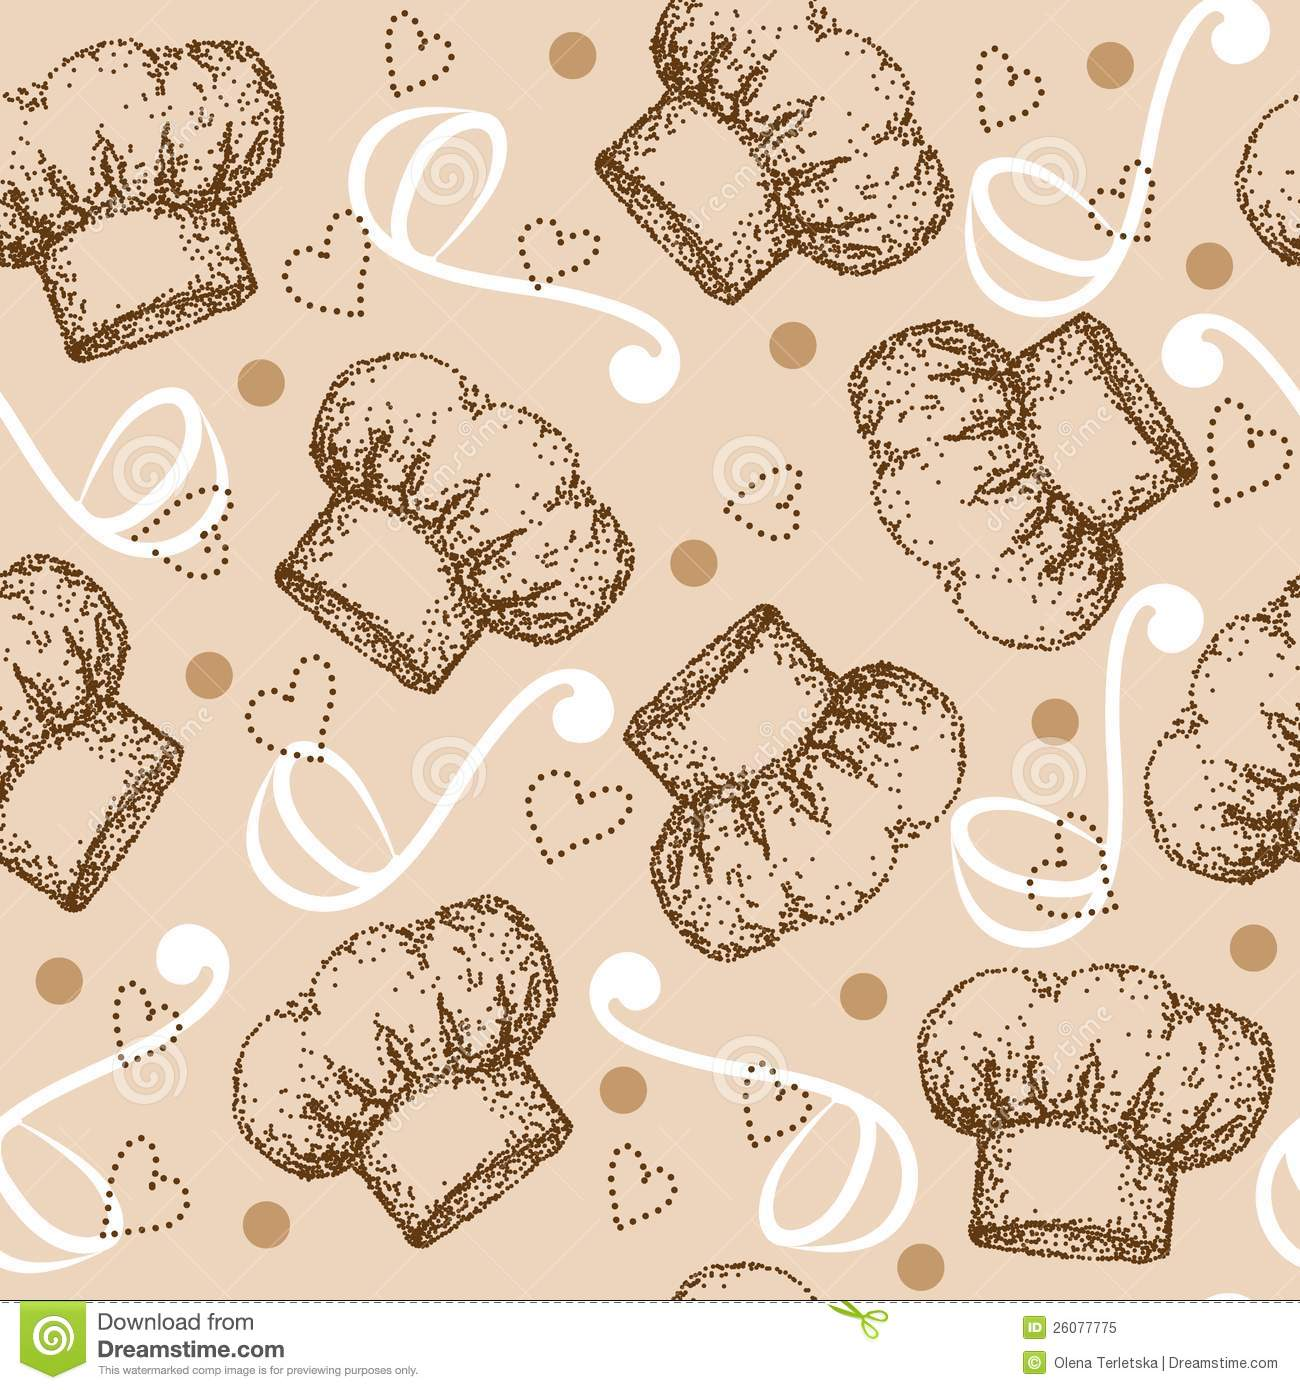 be84b144fa5 Cooking Seamless Pattern With Chef Hat Stock Vector - Illustration ...